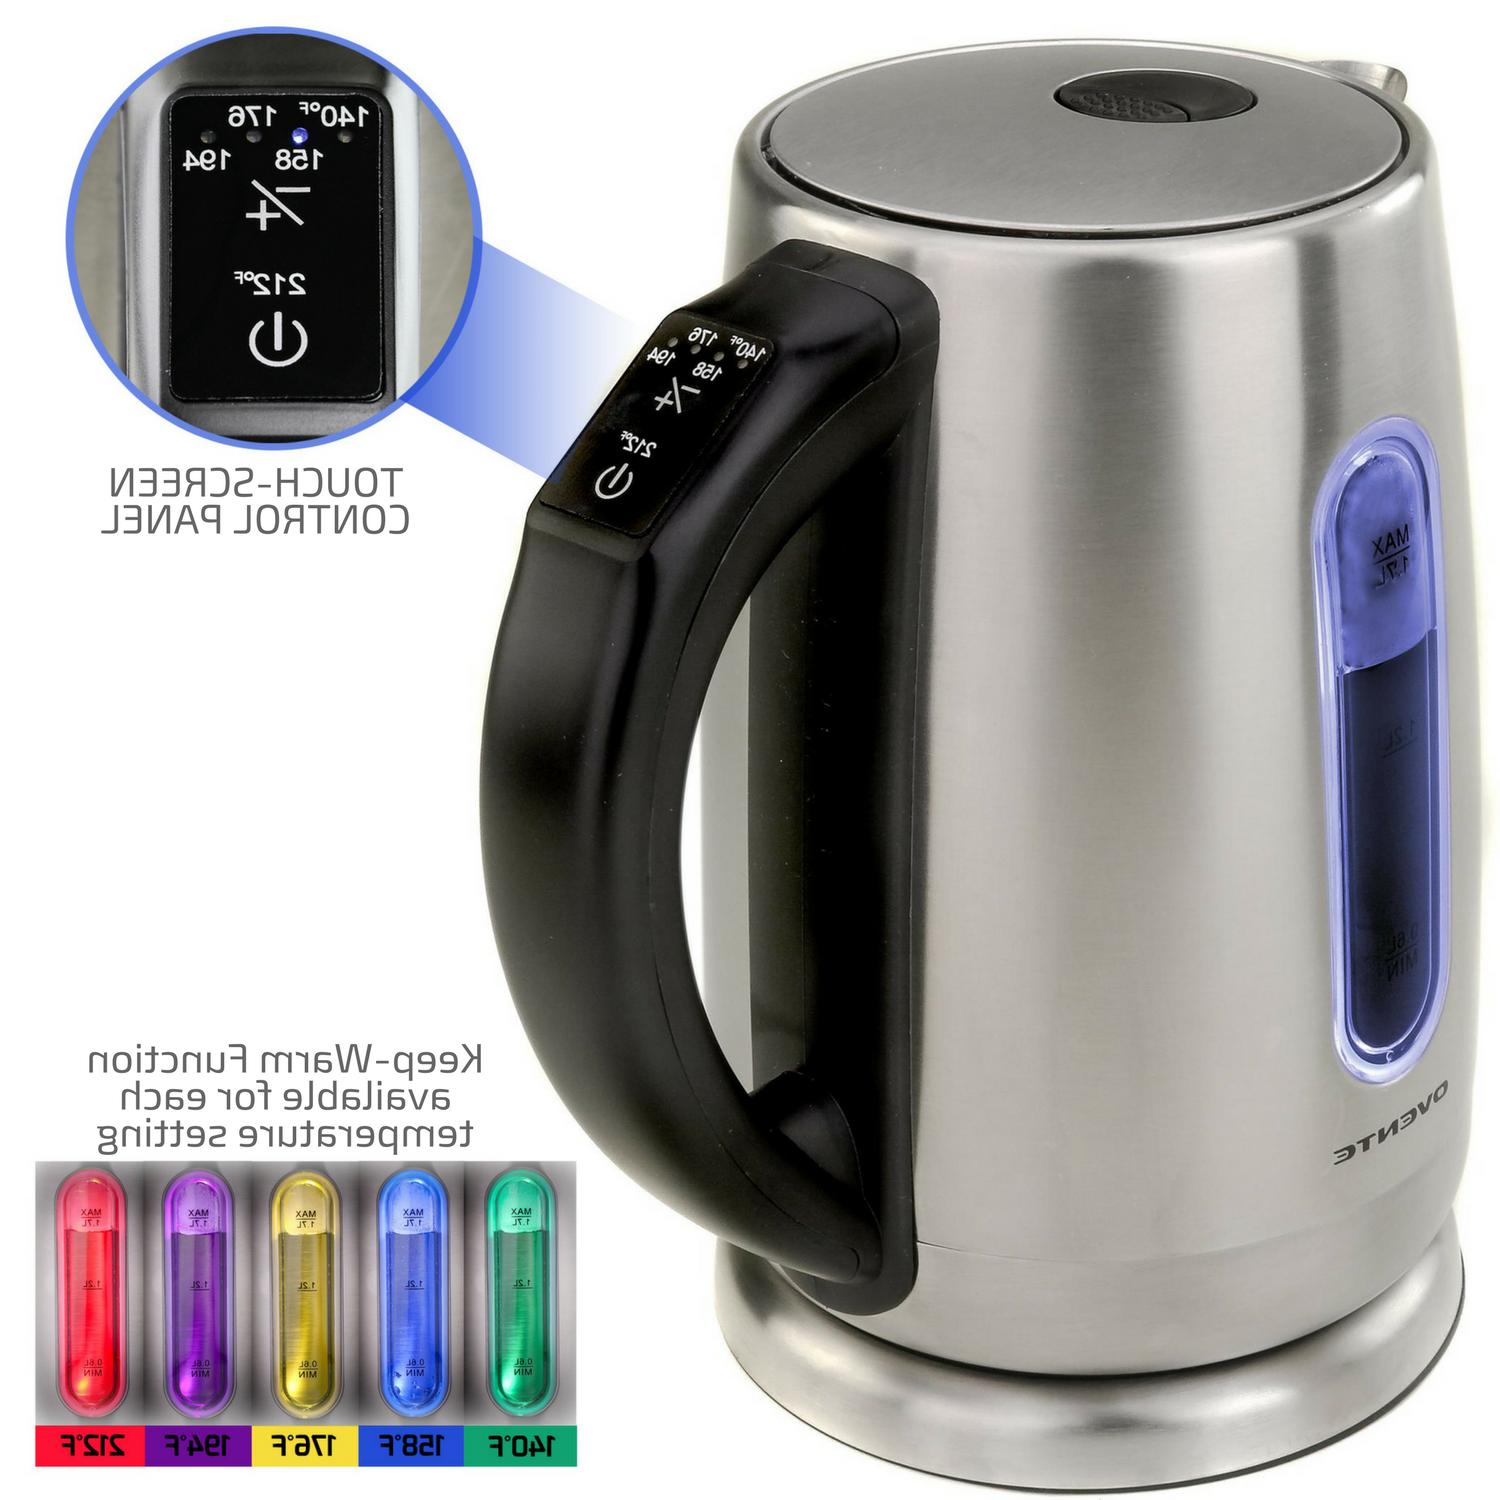 Ovente 1.7L Steel Electric Kettle with Touch